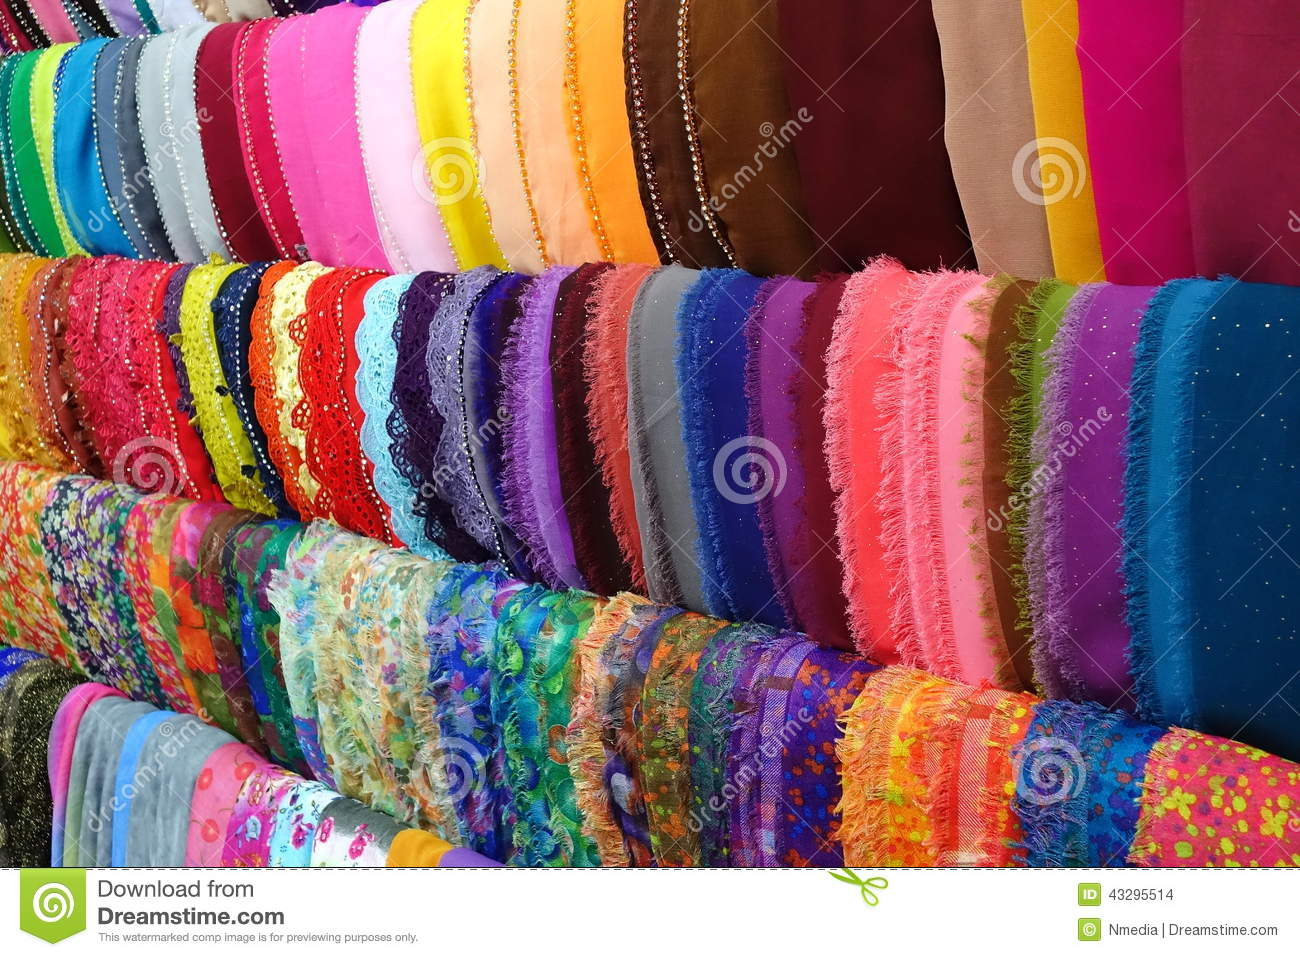 d0b2b2f880a0 Foulard coloré de mode photo stock. Image du indonésie - 43295514